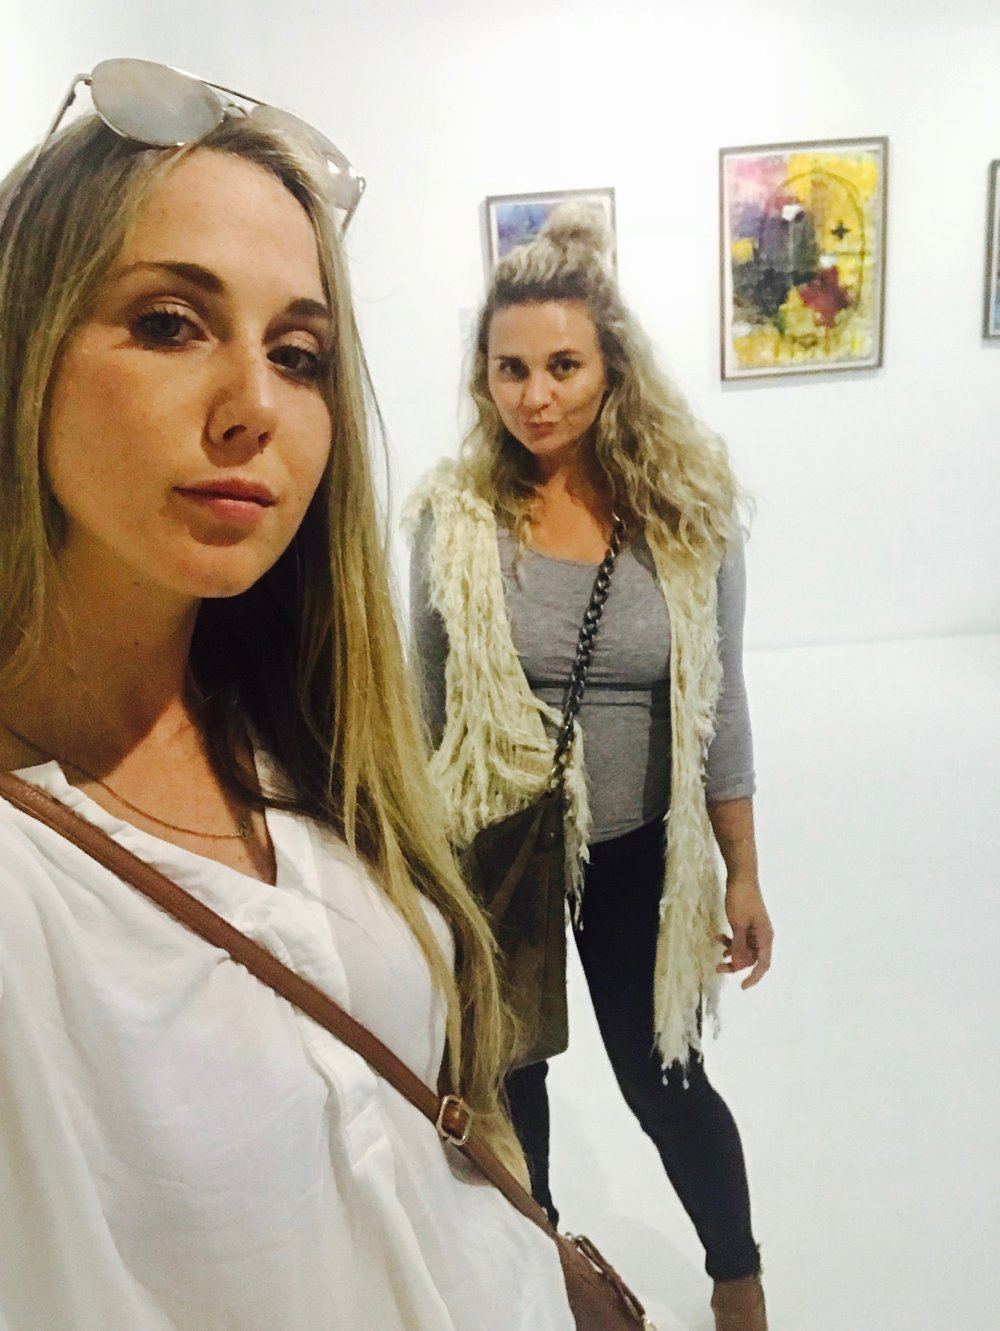 First thursday's in Cape Town, a vibing art walk and social scene. We are trying our best to be civilized in the art galleries.